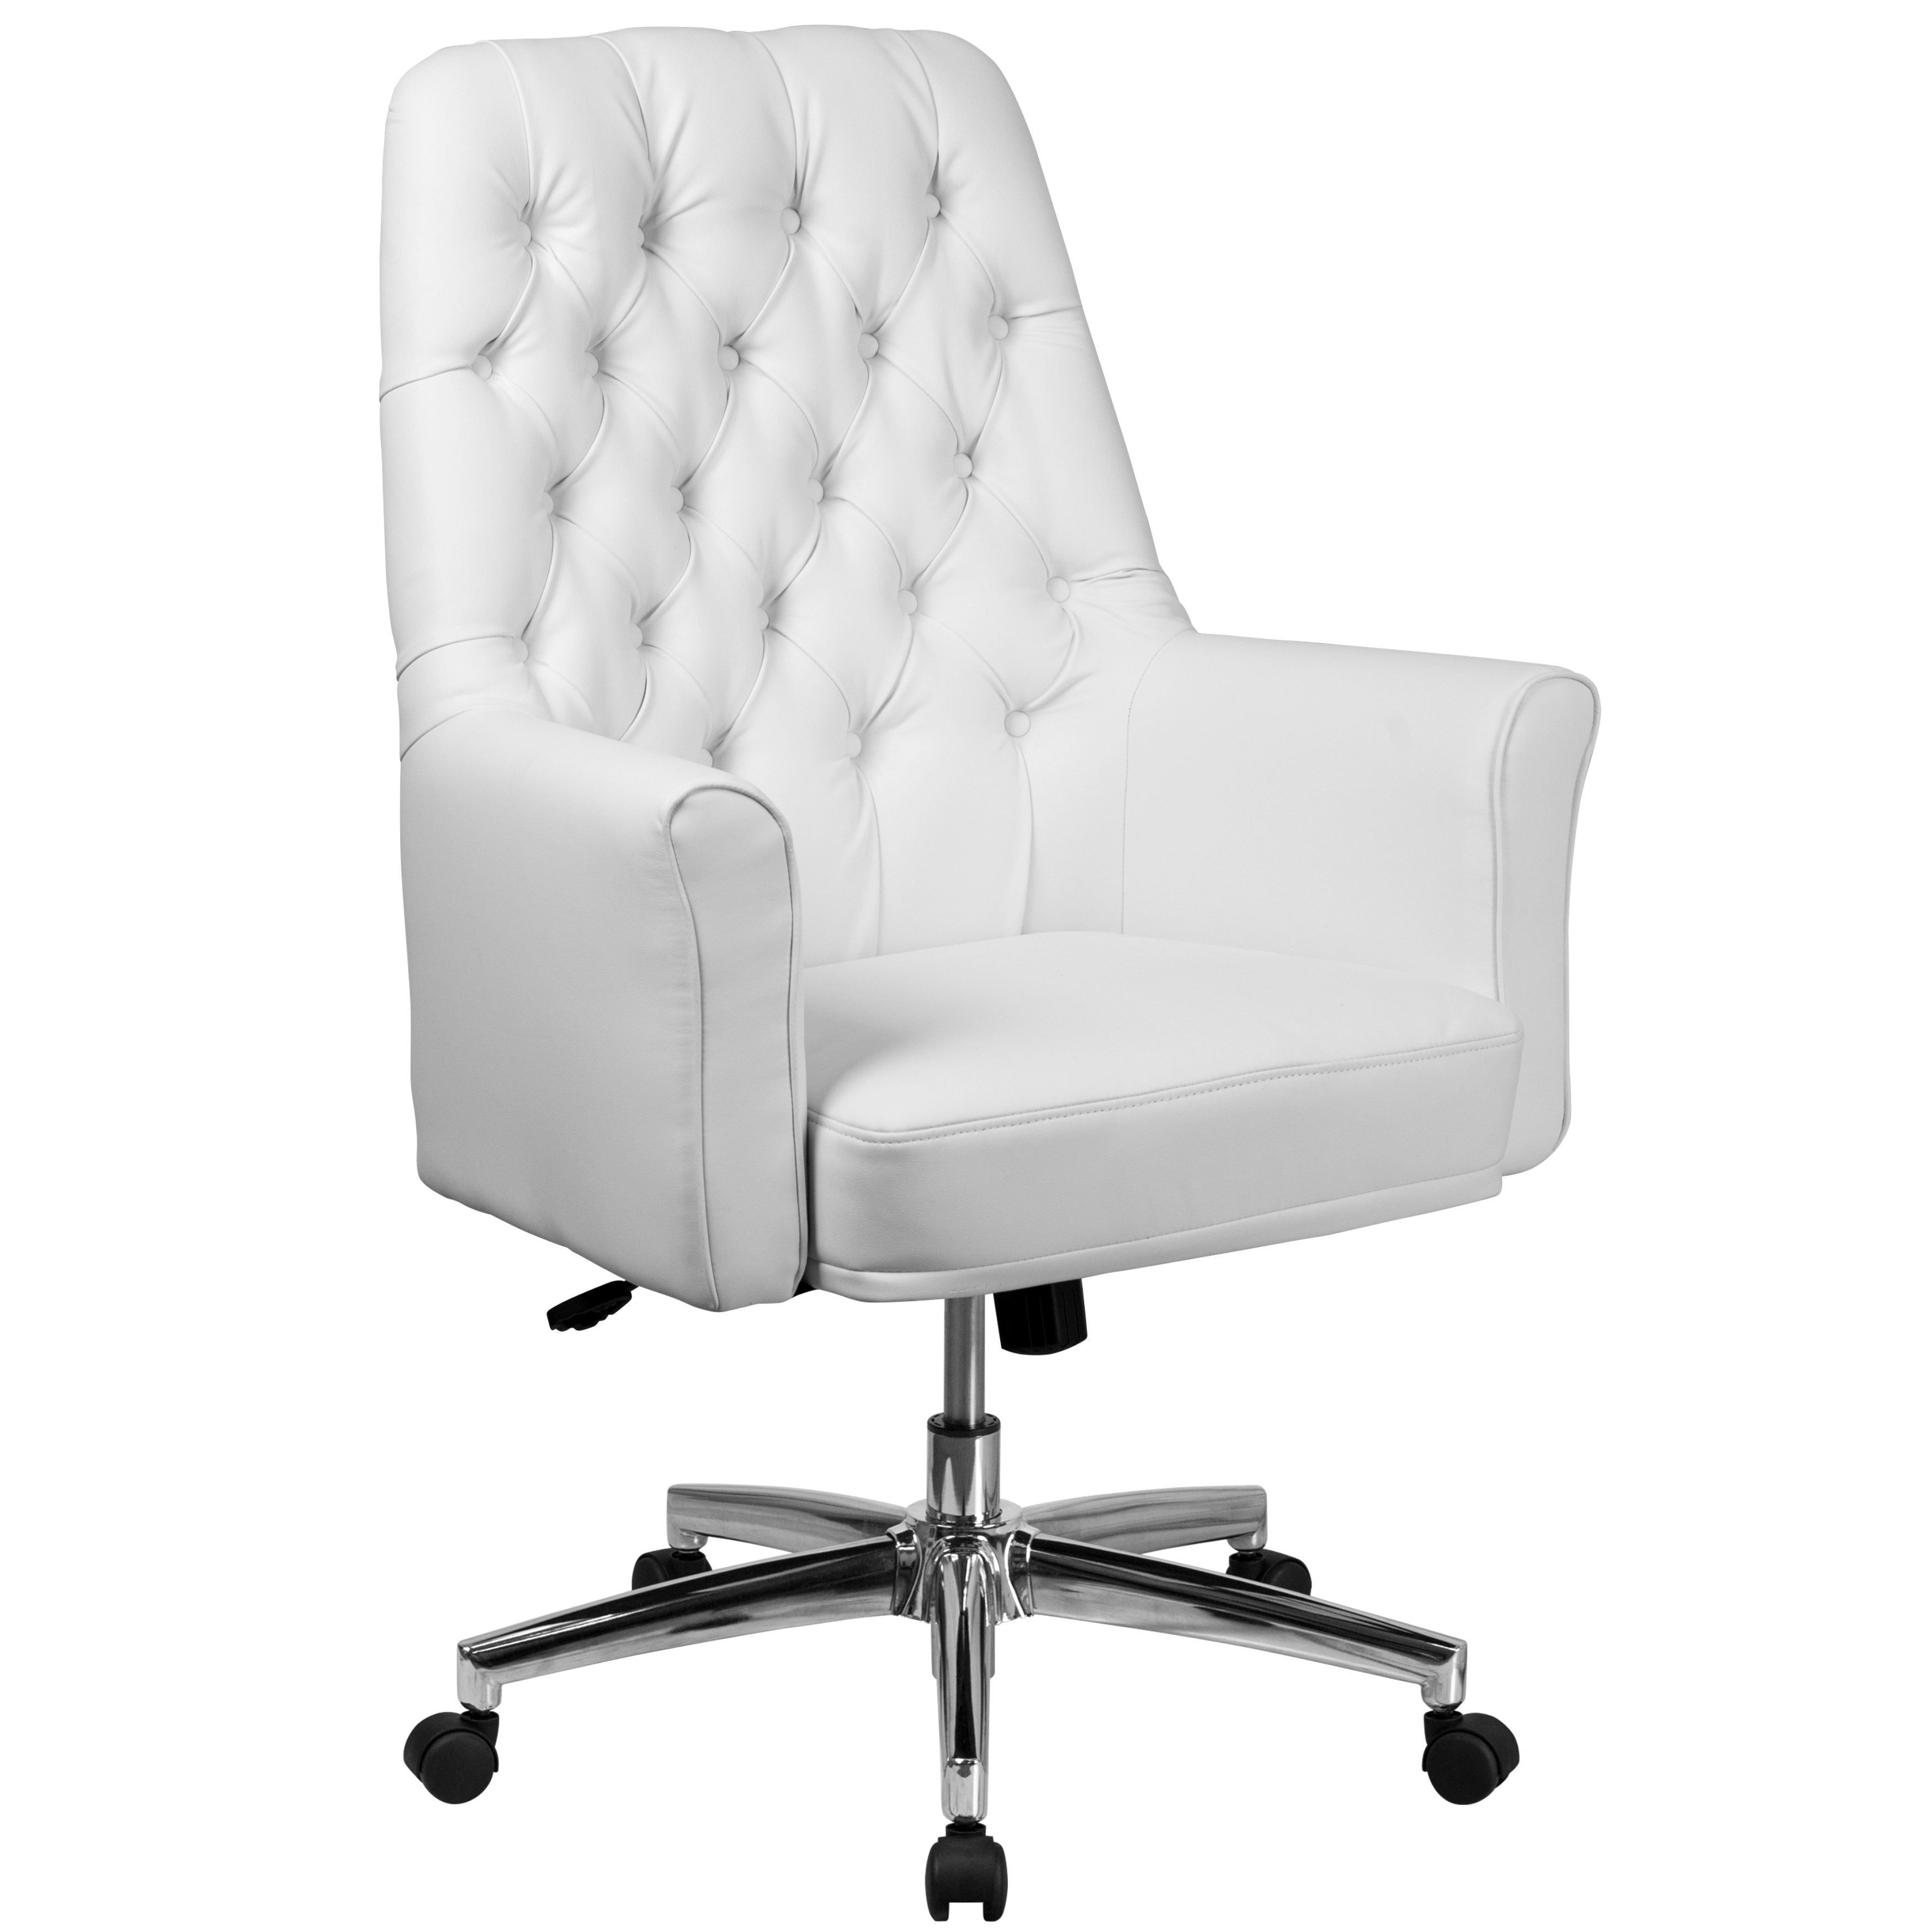 White Leather Button Tufted Multifunction Executive Swivel Office Chair Overstock 16746539